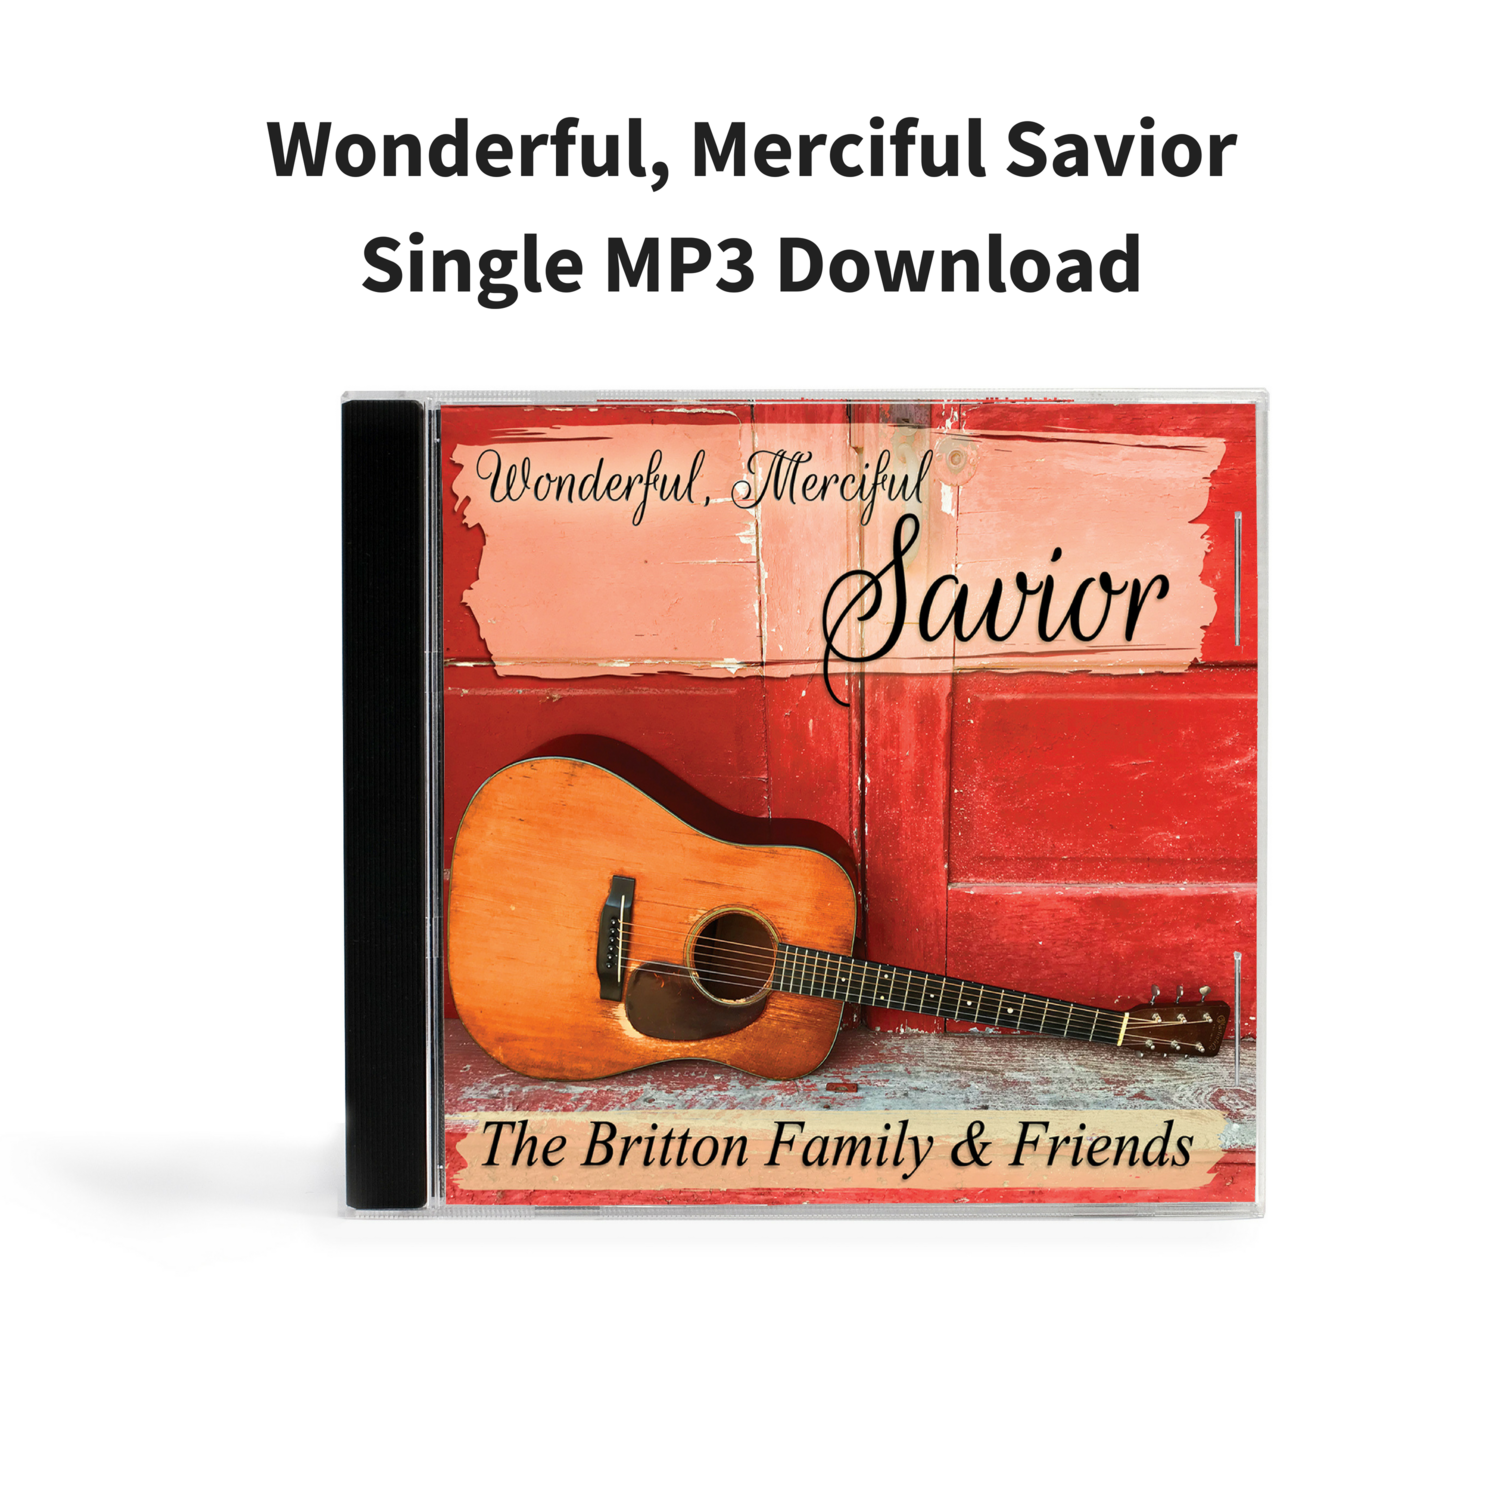 Wonderful, Merciful Savior - Single MP3 Download